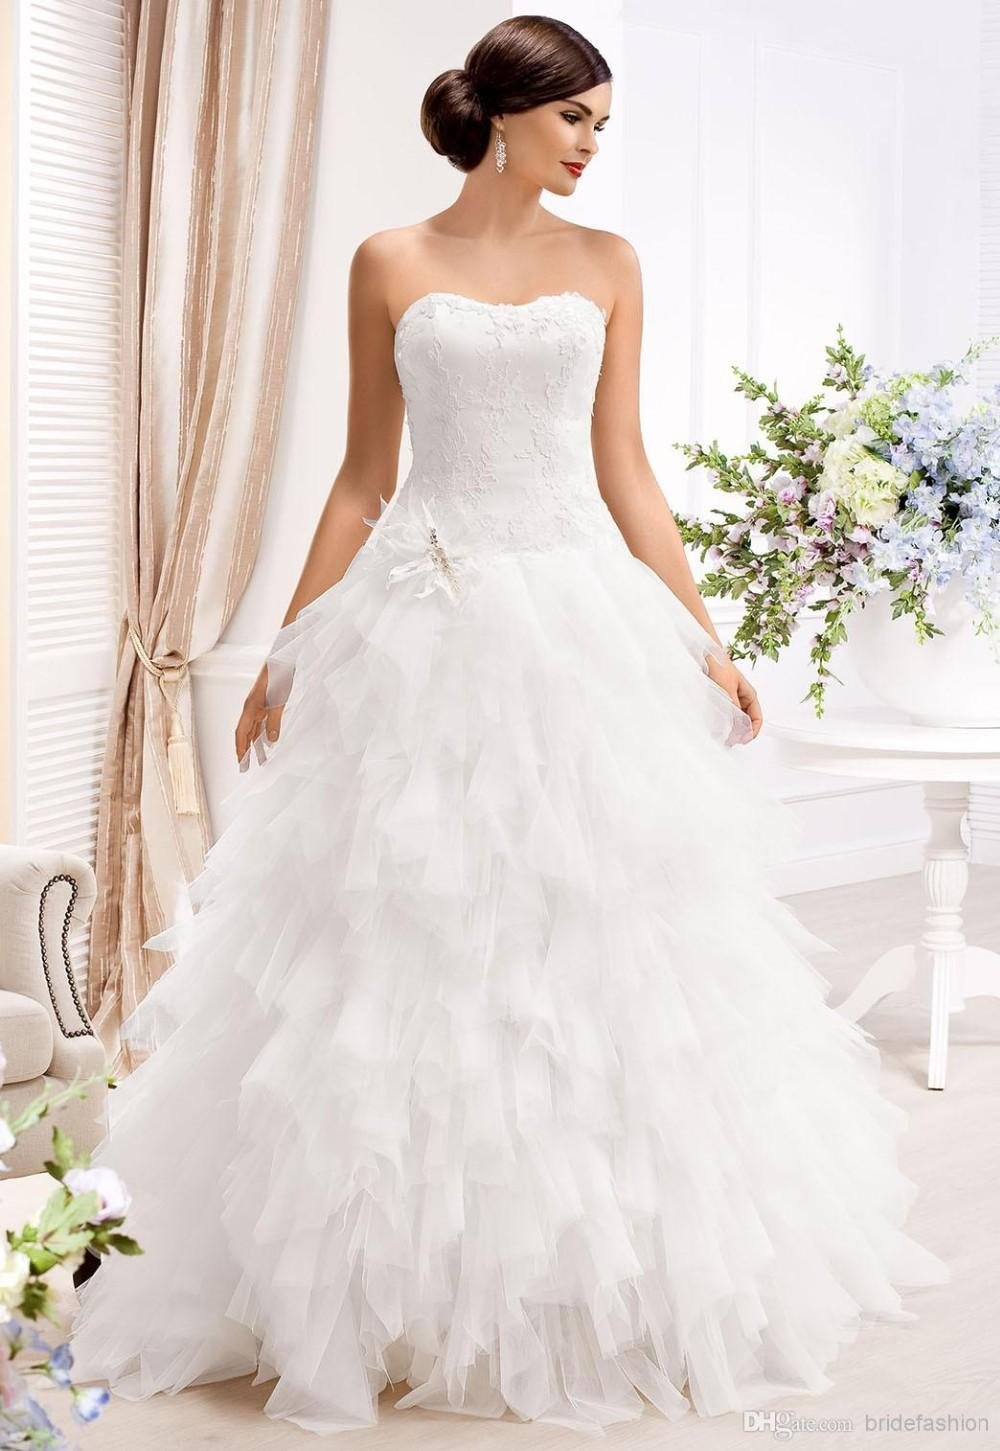 Online shop 2016 new arrival sweetheart neck long wedding dresses online shop 2016 new arrival sweetheart neck long wedding dresses with detachable skirt 2 in 1 tulle ruffles wedding gowns w102906 aliexpress mobile ombrellifo Choice Image